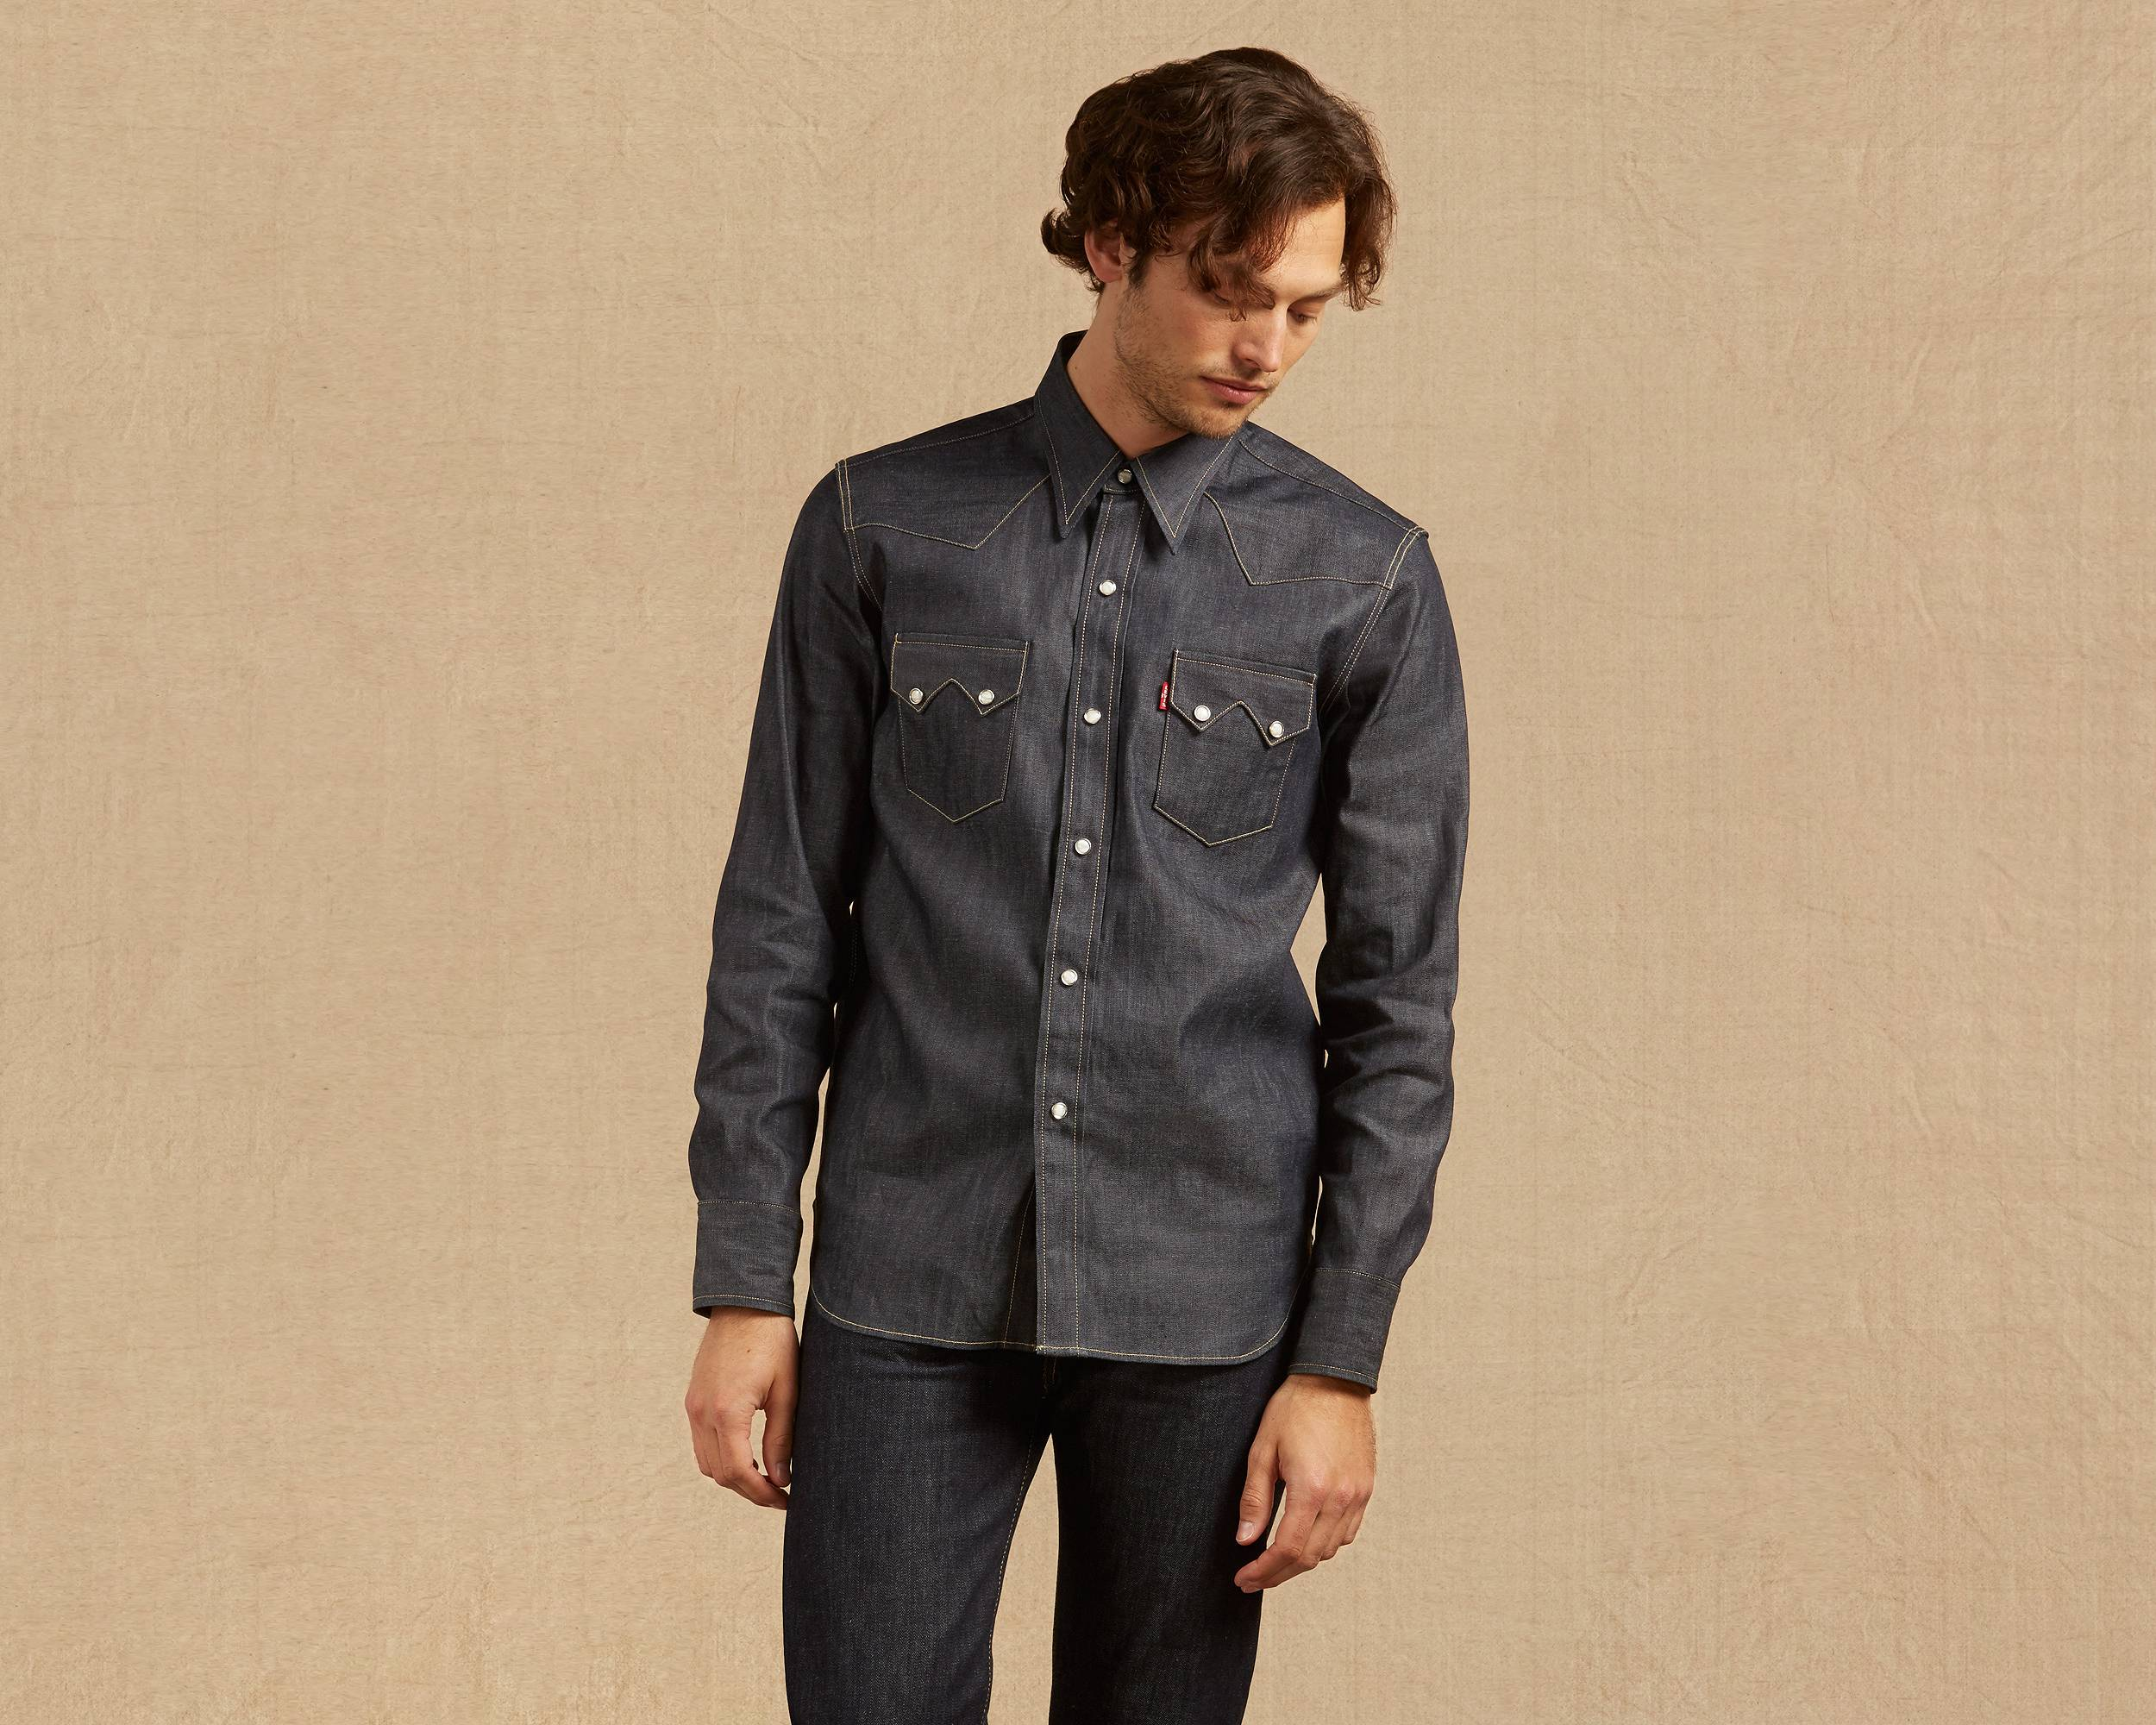 Vintage Men's Clothing - Shop LVC for Men | Levi's®